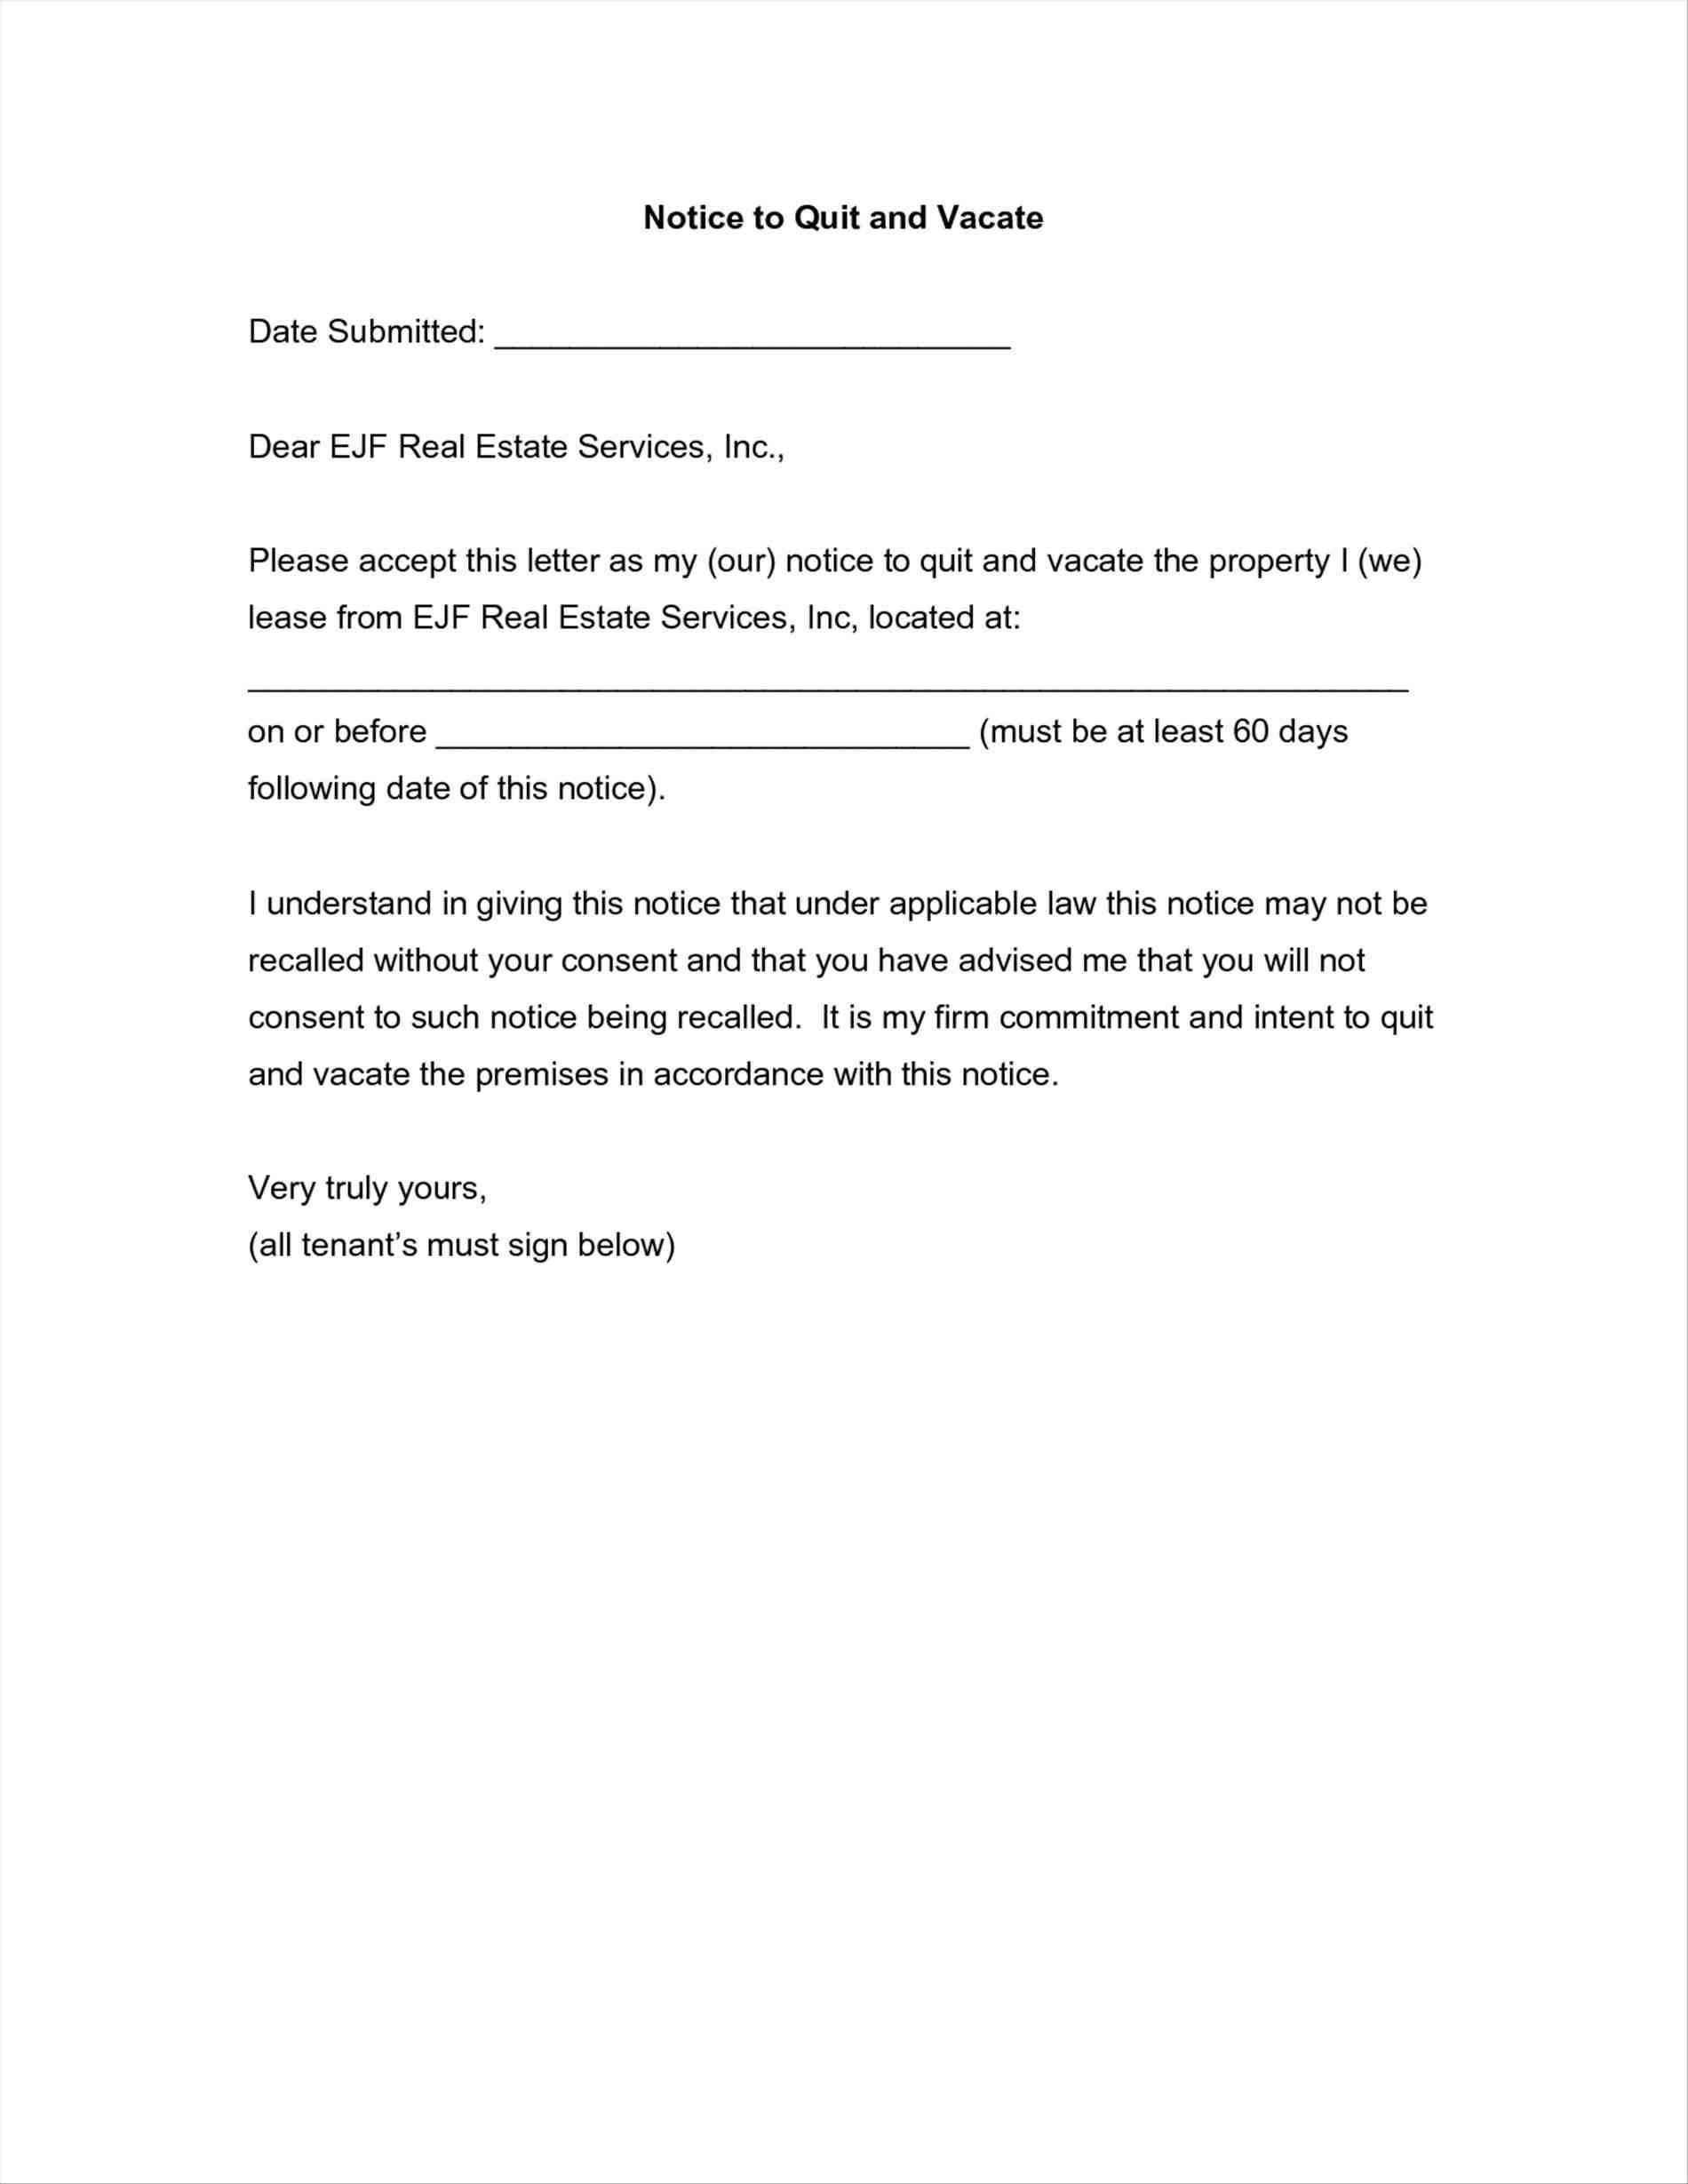 Notice to Vacate Letter Template - Qtownrec Wp Content 2018 07 Template Fo